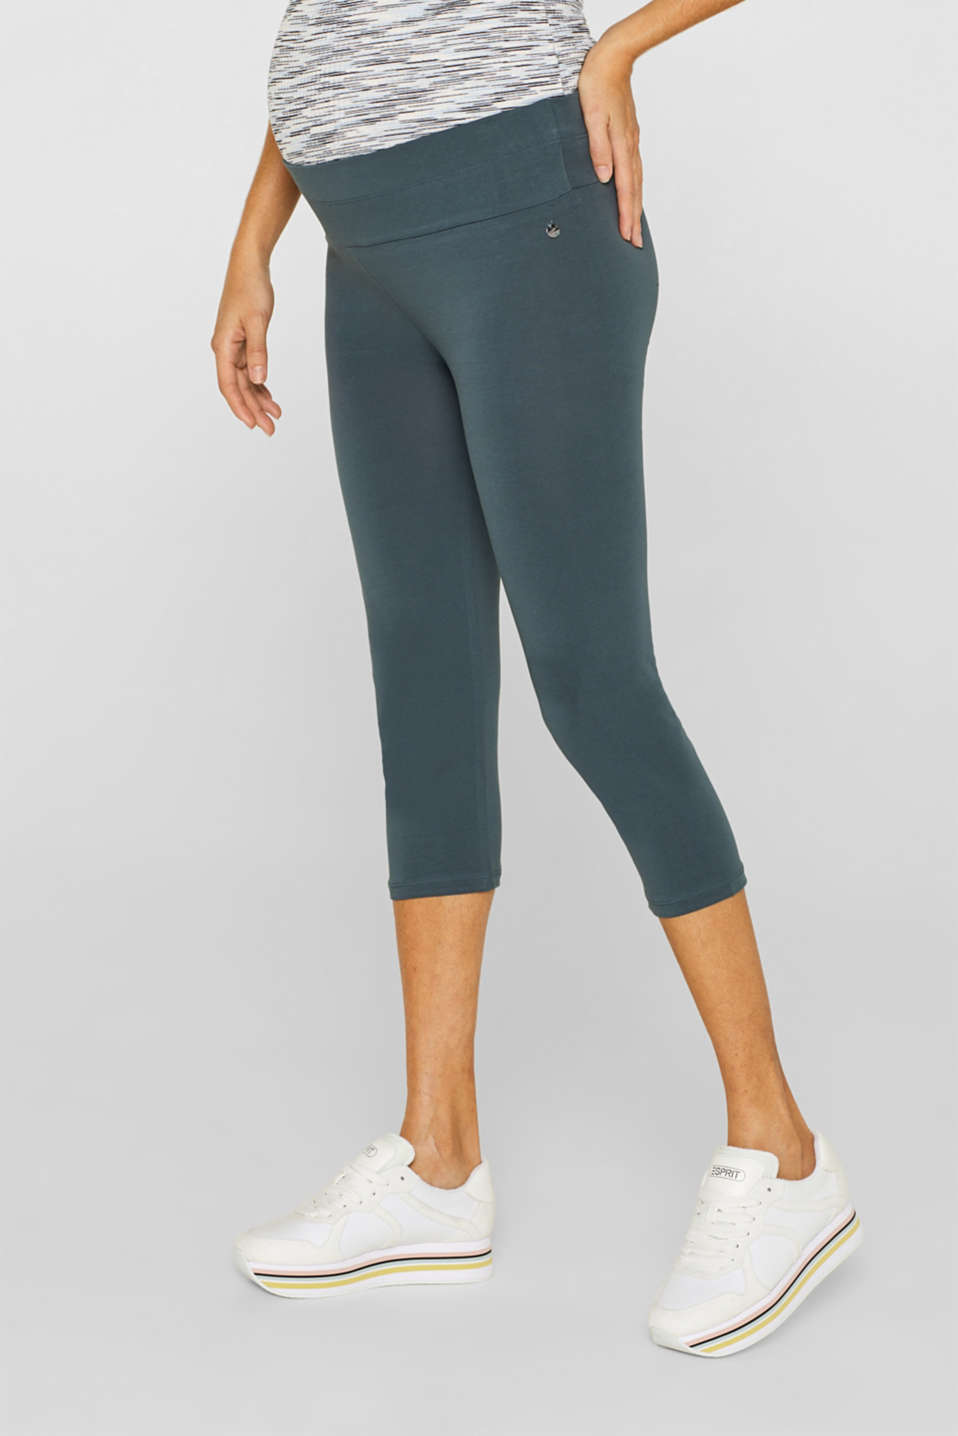 Esprit - Capri leggings + under-bump waistband